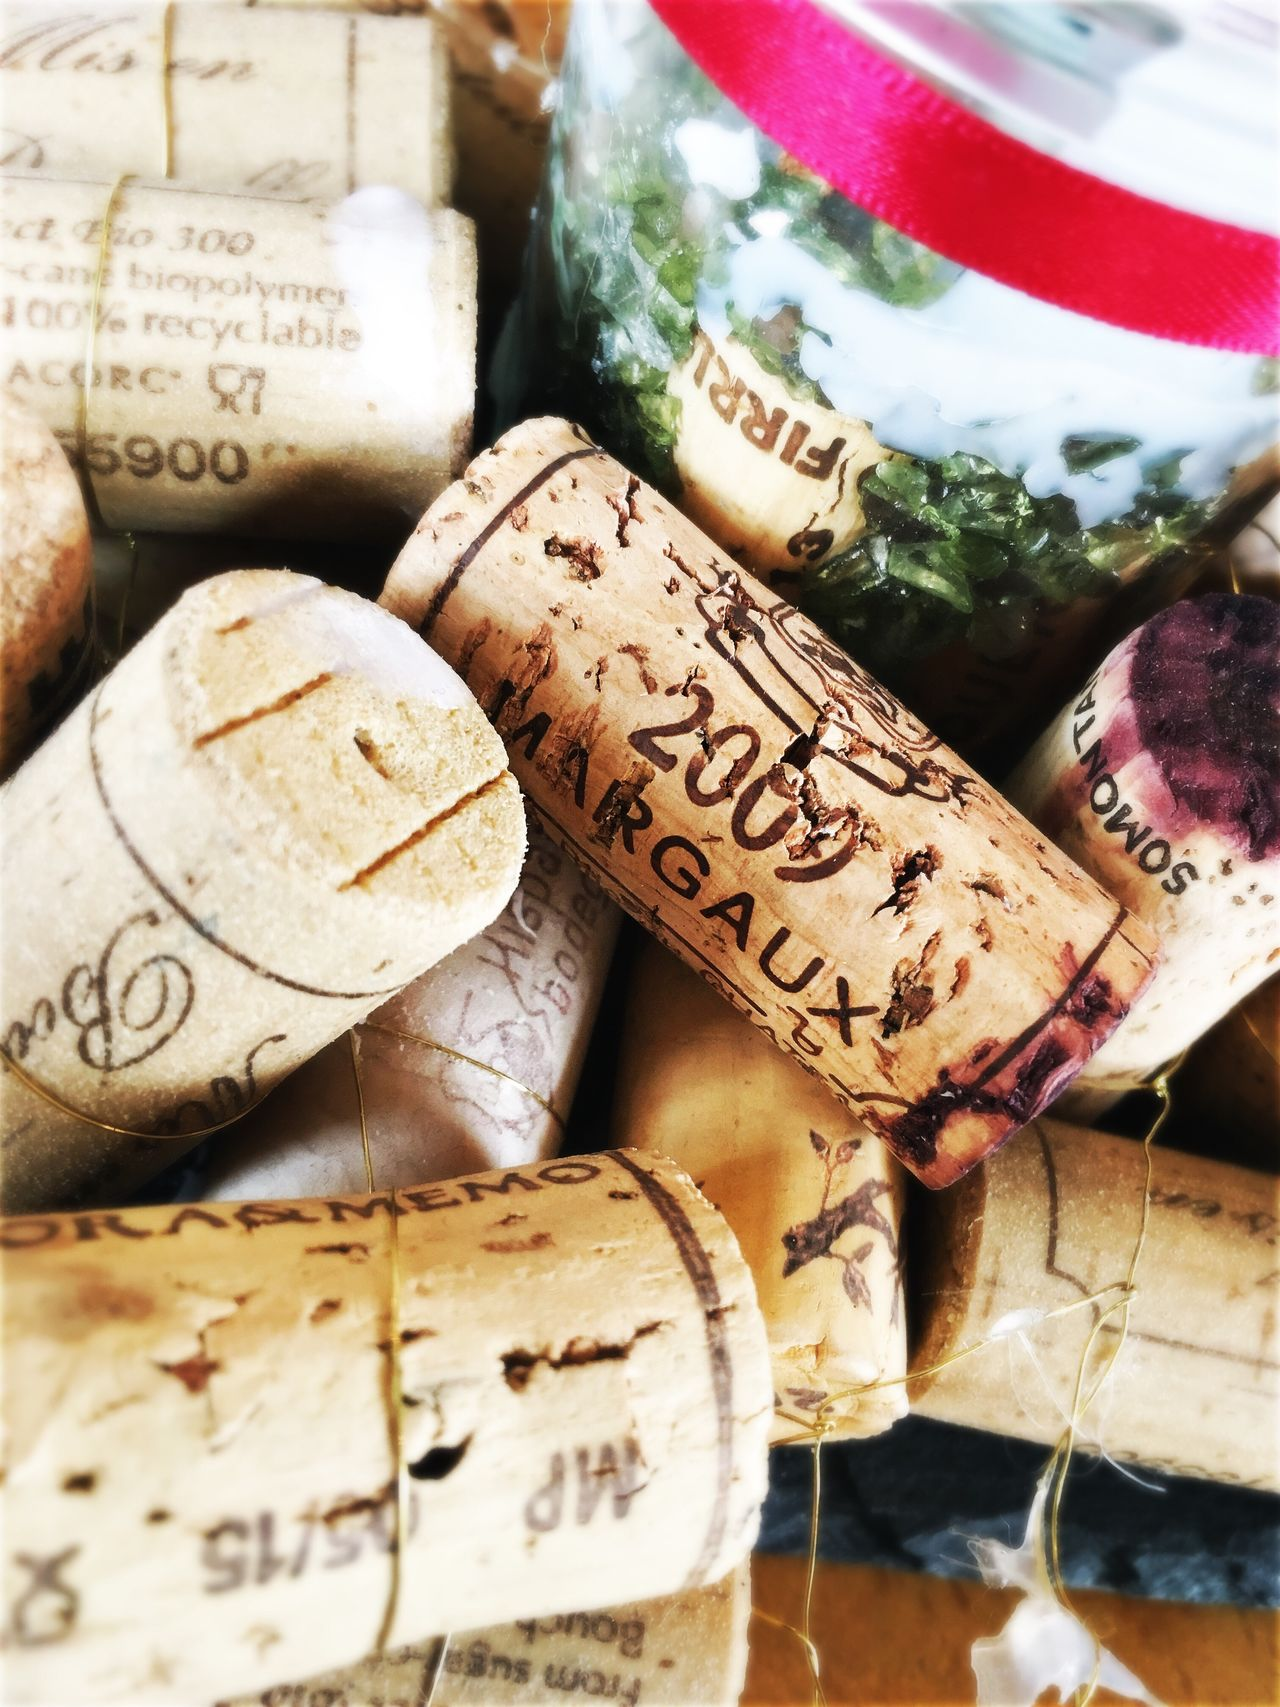 Wine Wine Cork Cork - Stopper Text Cultures Wine Bottle Alcohol Food And Drink Close-up French Food No People Red Wine Drink Cellar Indoors  Winetasting Day